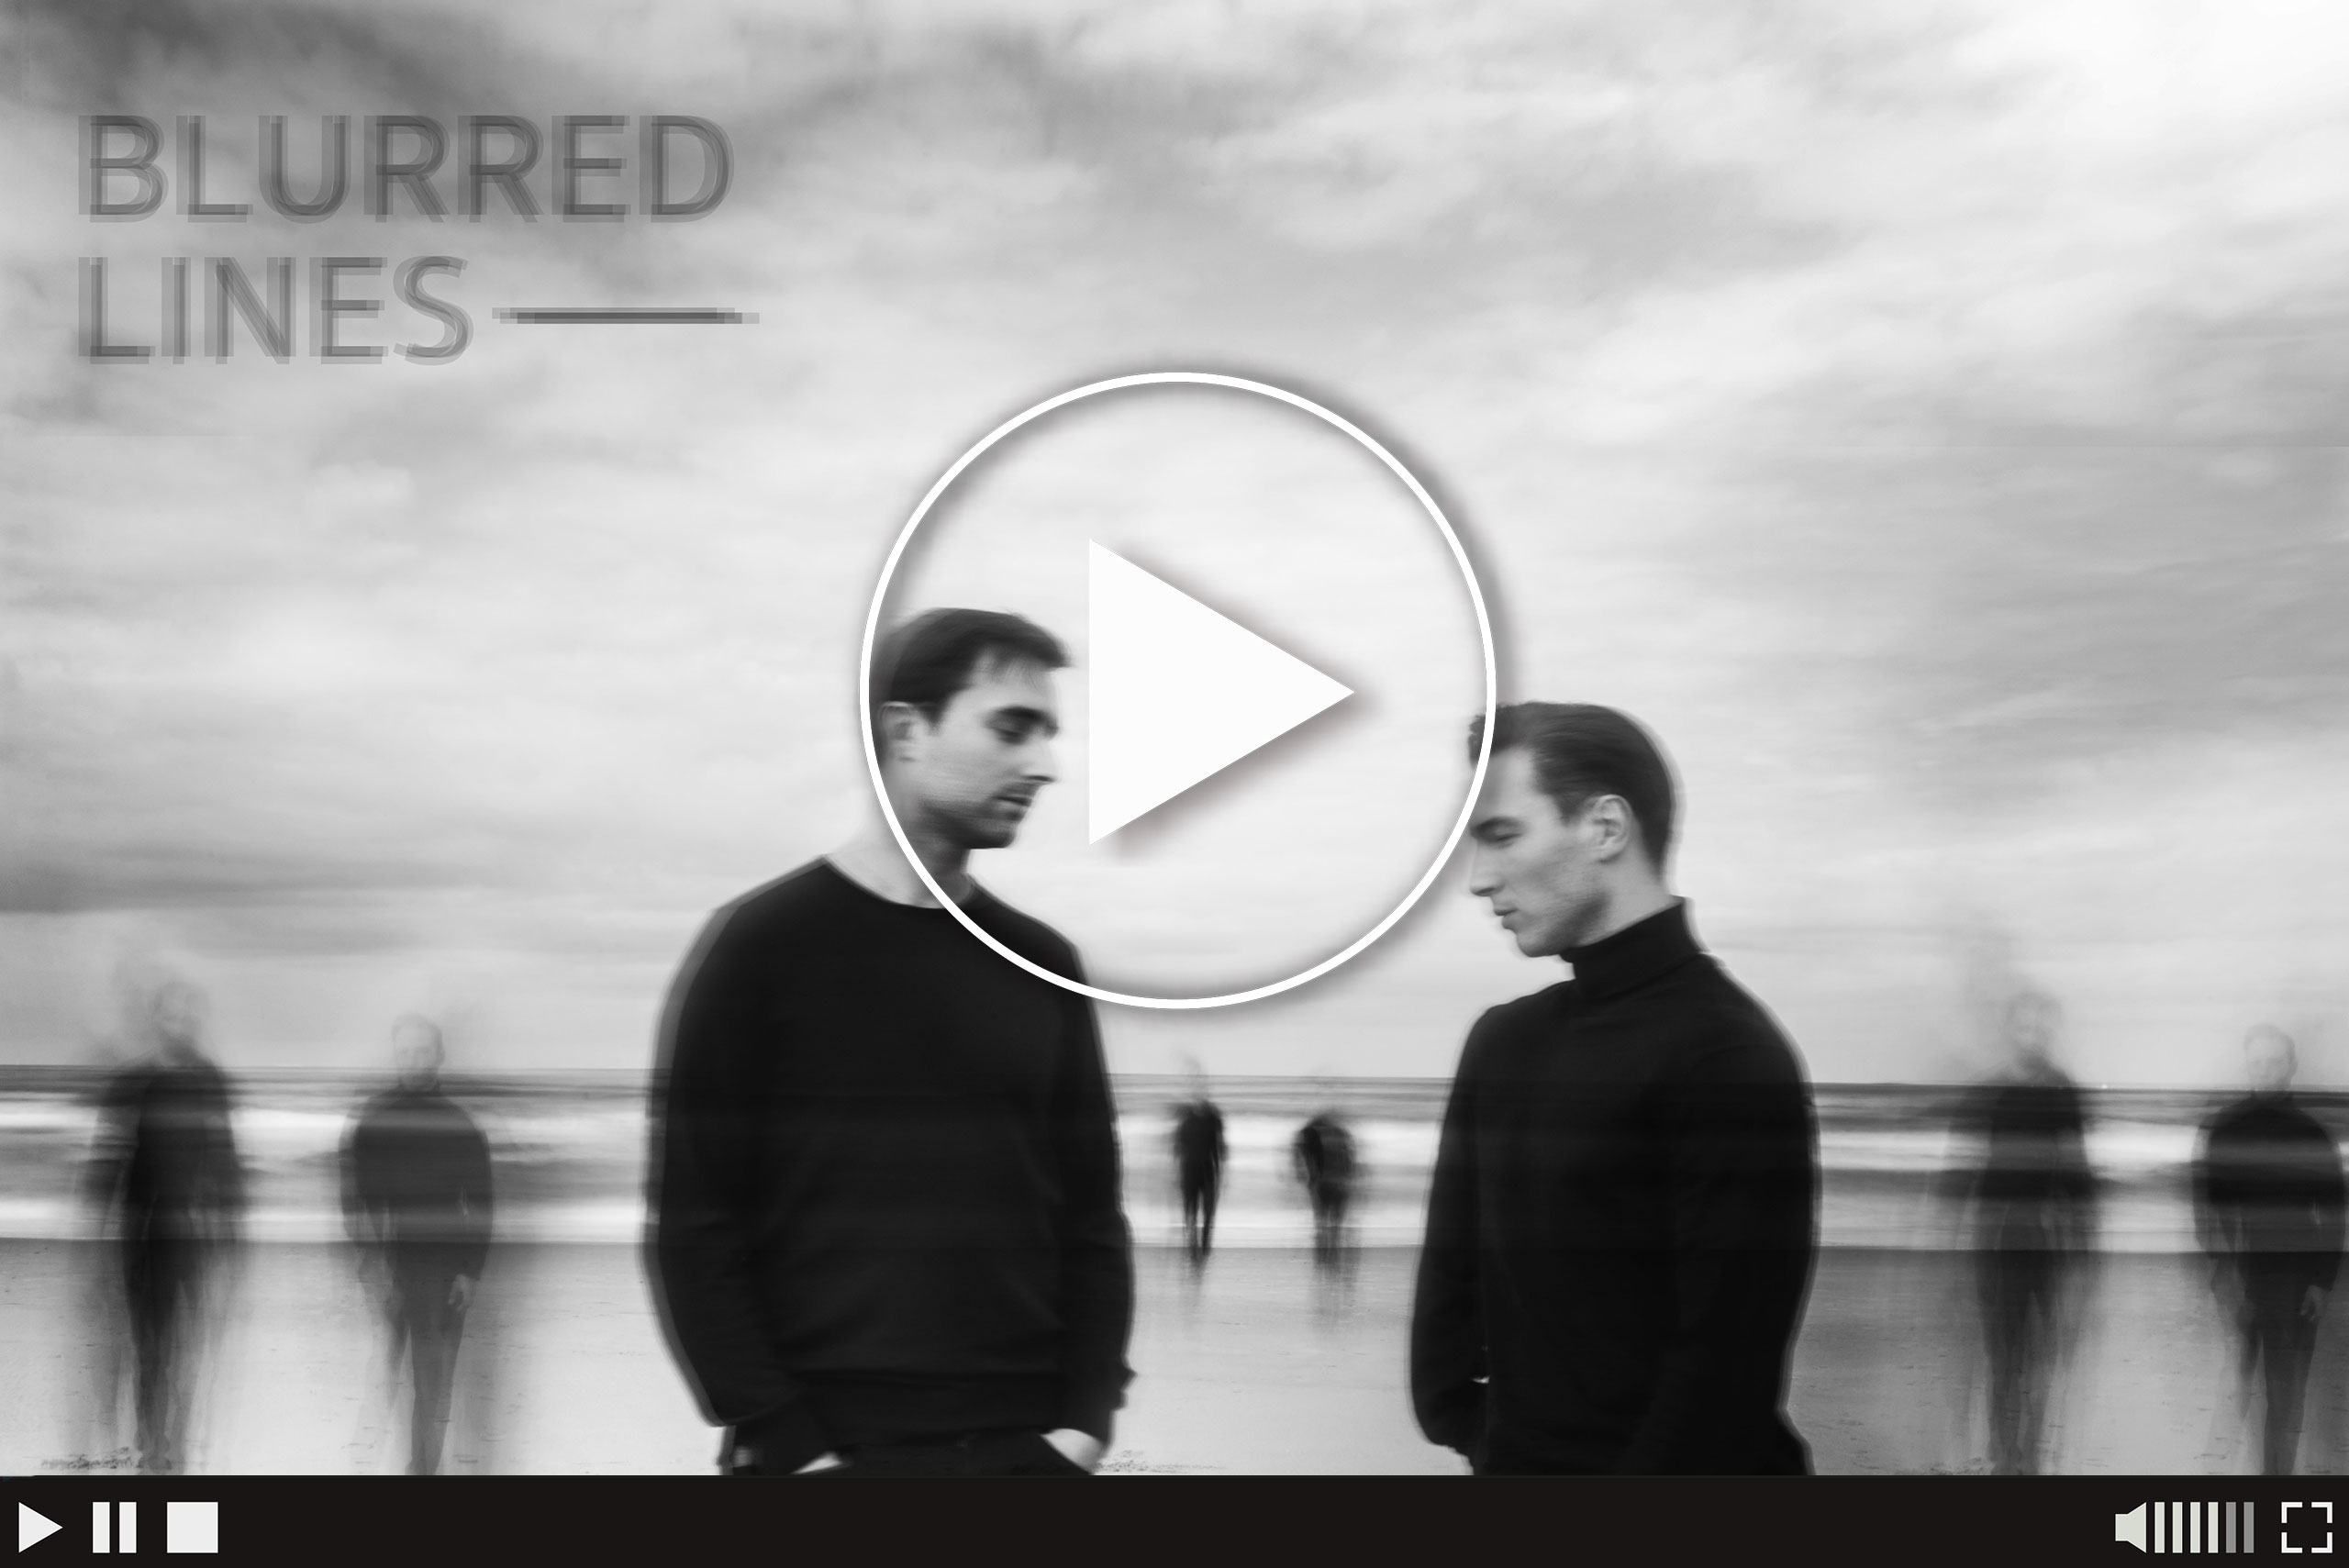 Blurred-lines-thumbnail